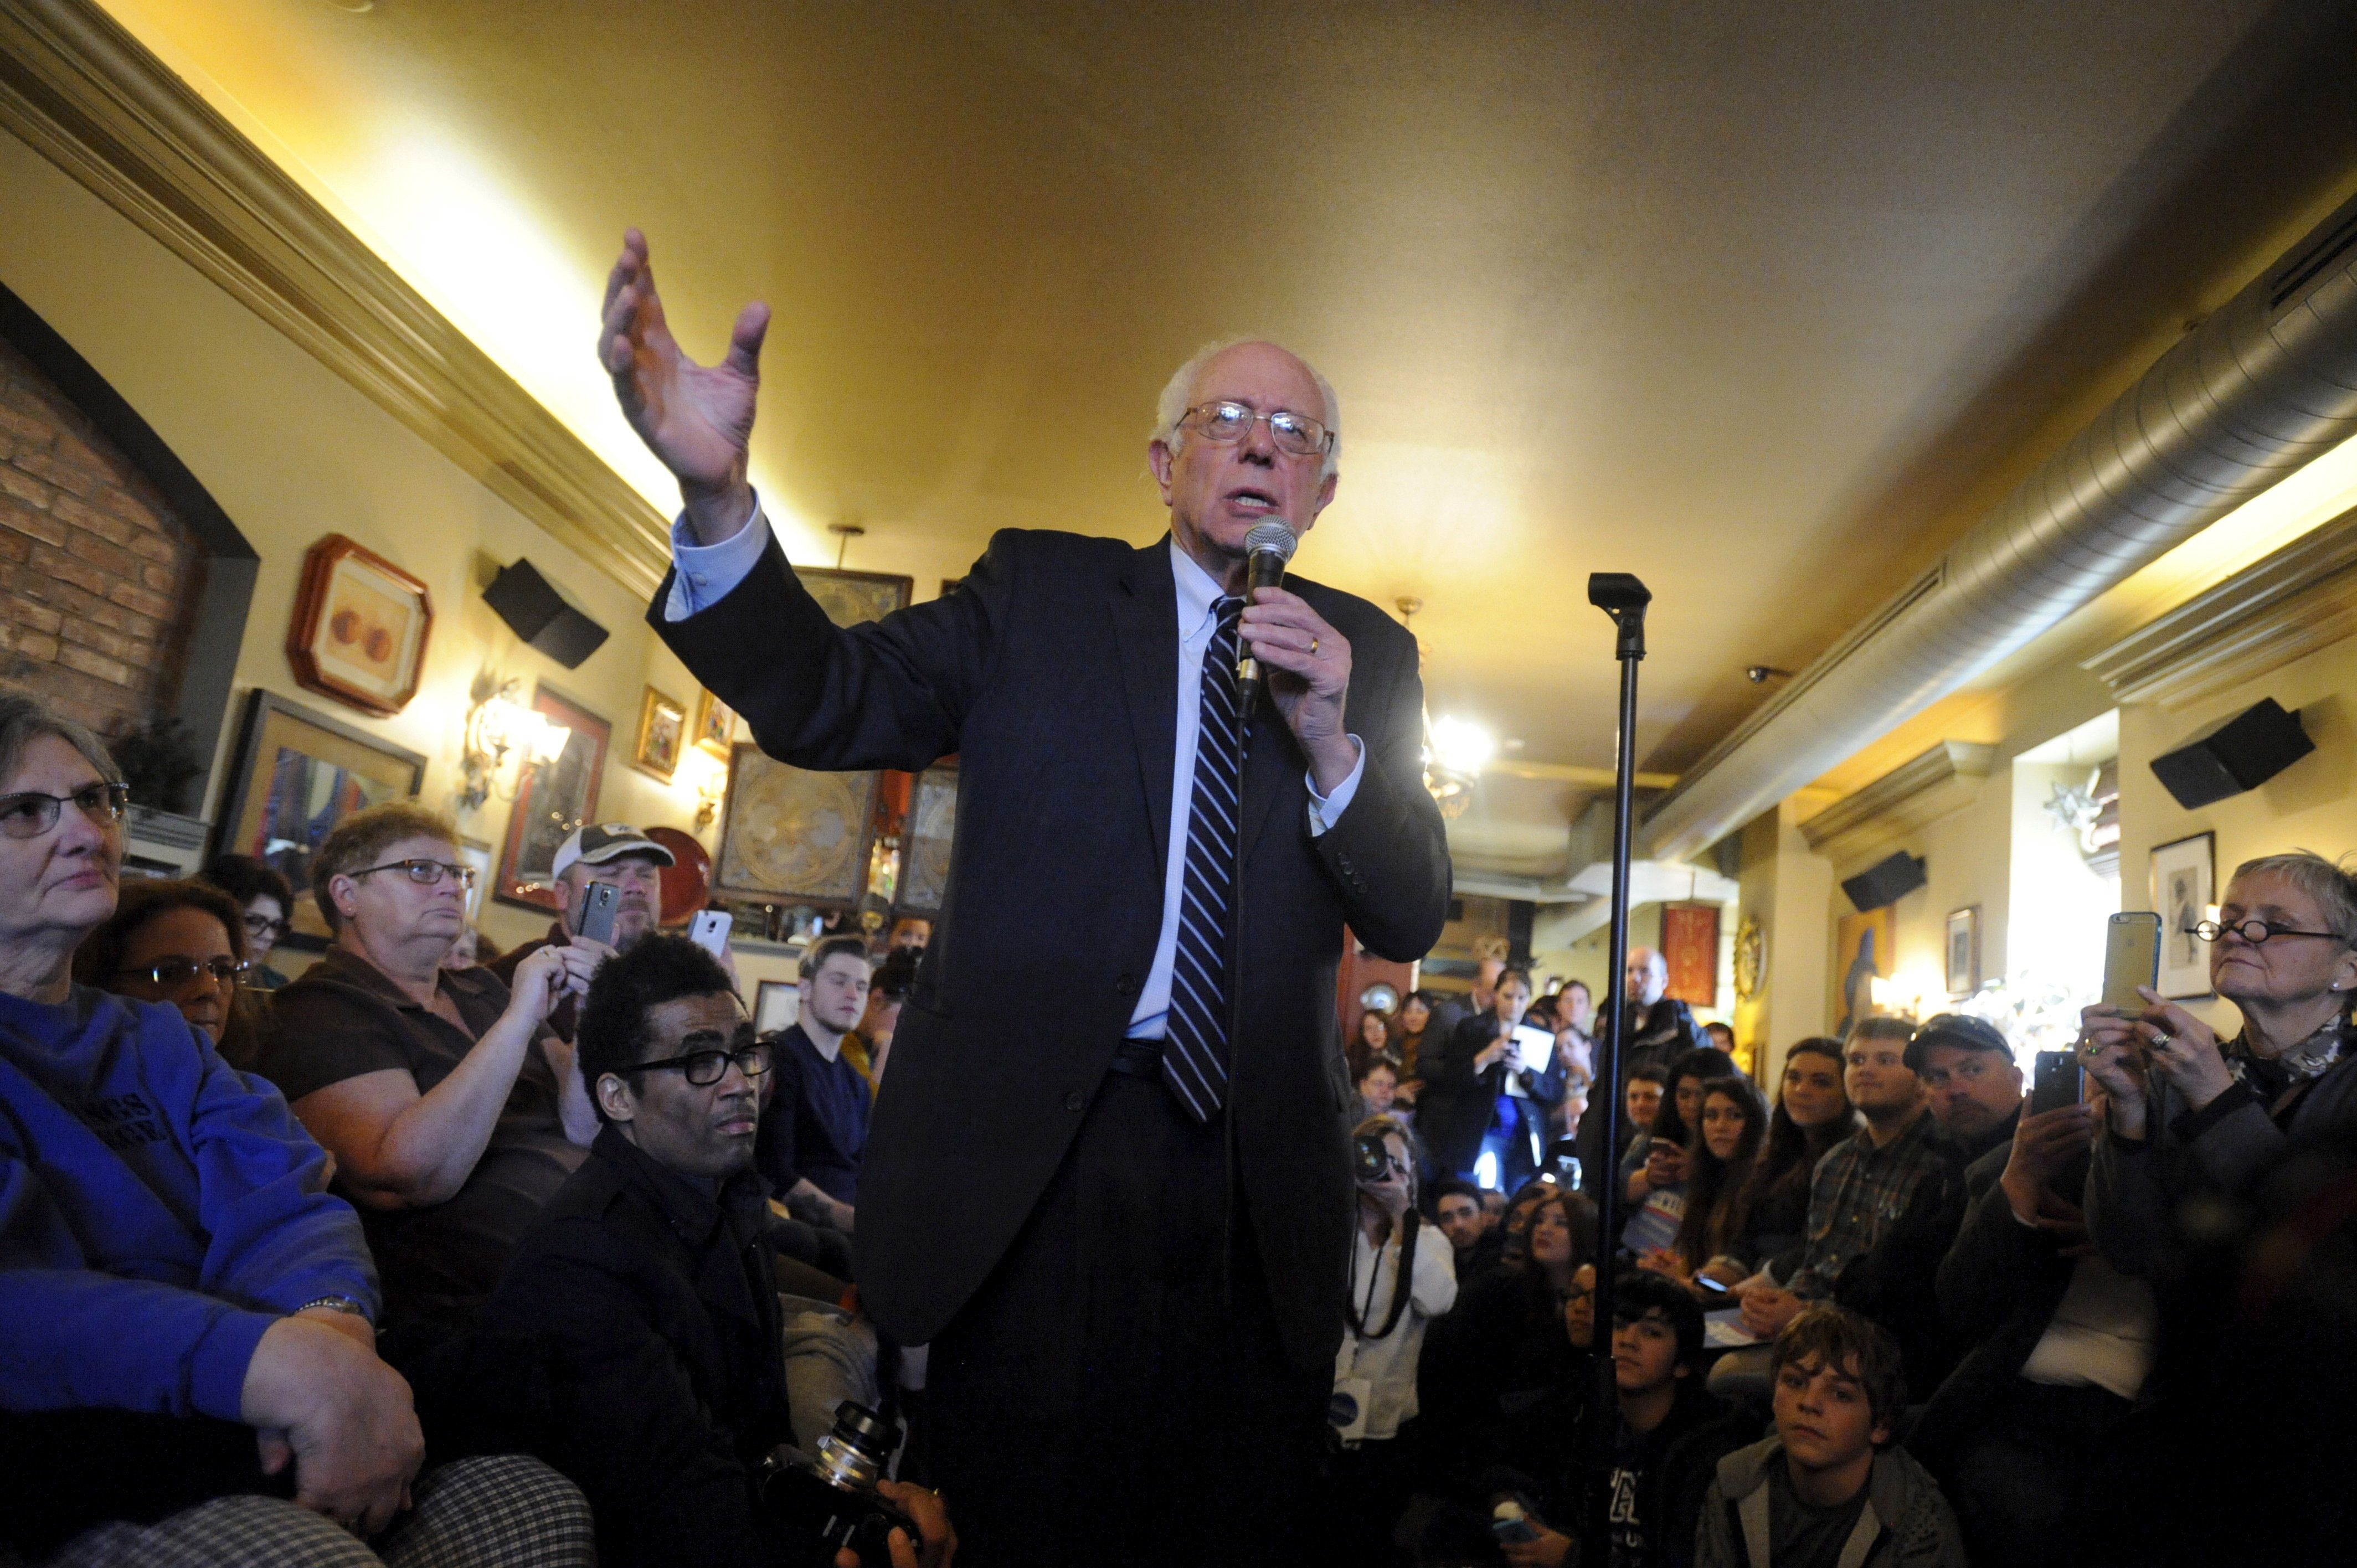 Sen. Bernie Sanders' 2016 presidential campaign raised $218 million a little at a time.